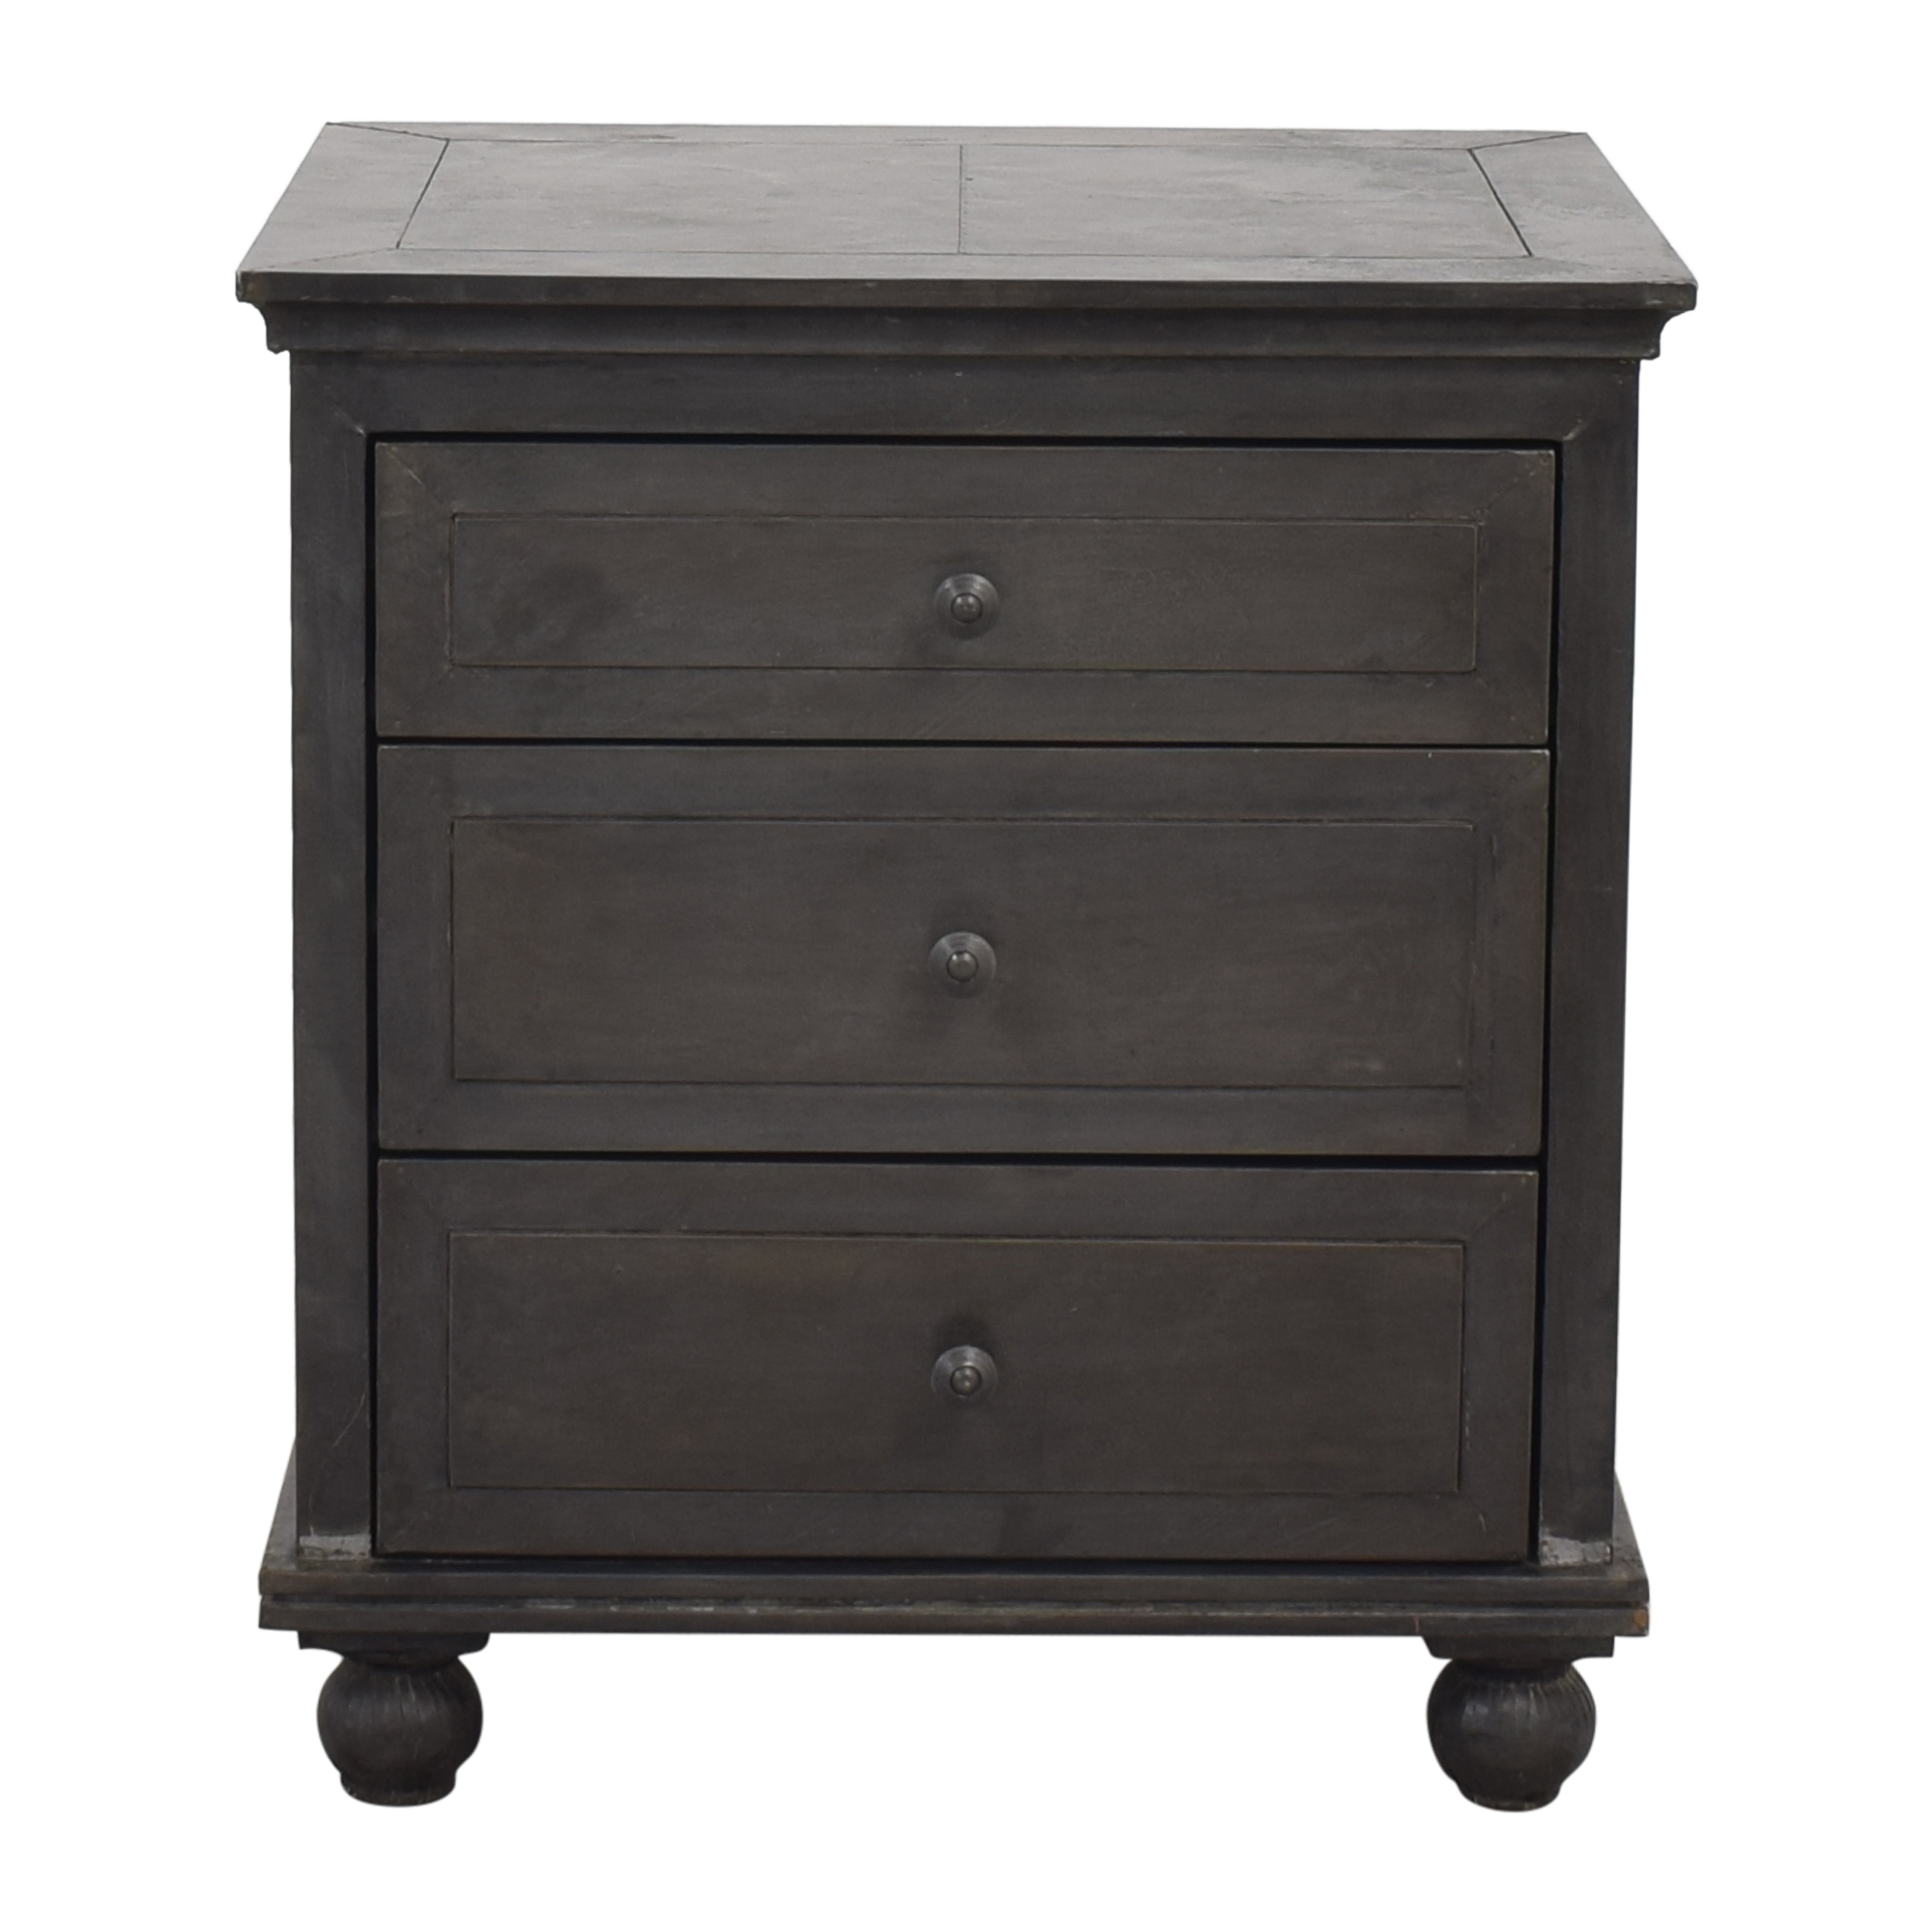 Restoration Hardware Restoration Hardware Annecy Metal-Wrapped Closed Nightstand ct